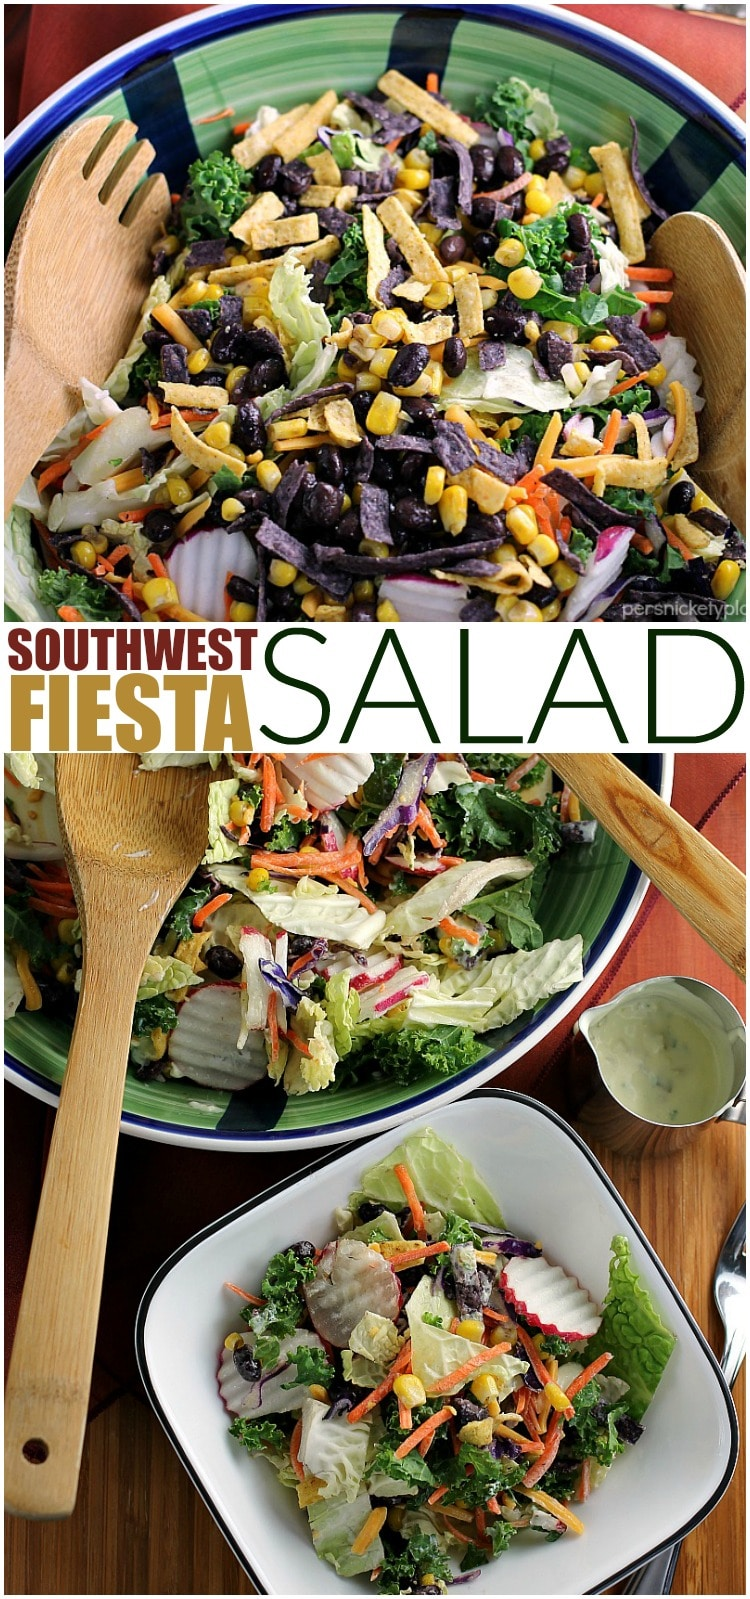 Southwest Fiesta Salad with a quick homemade spicy jalapeno dressing is a fast and healthy meal for any day of the week. | Persnickety Plates AD